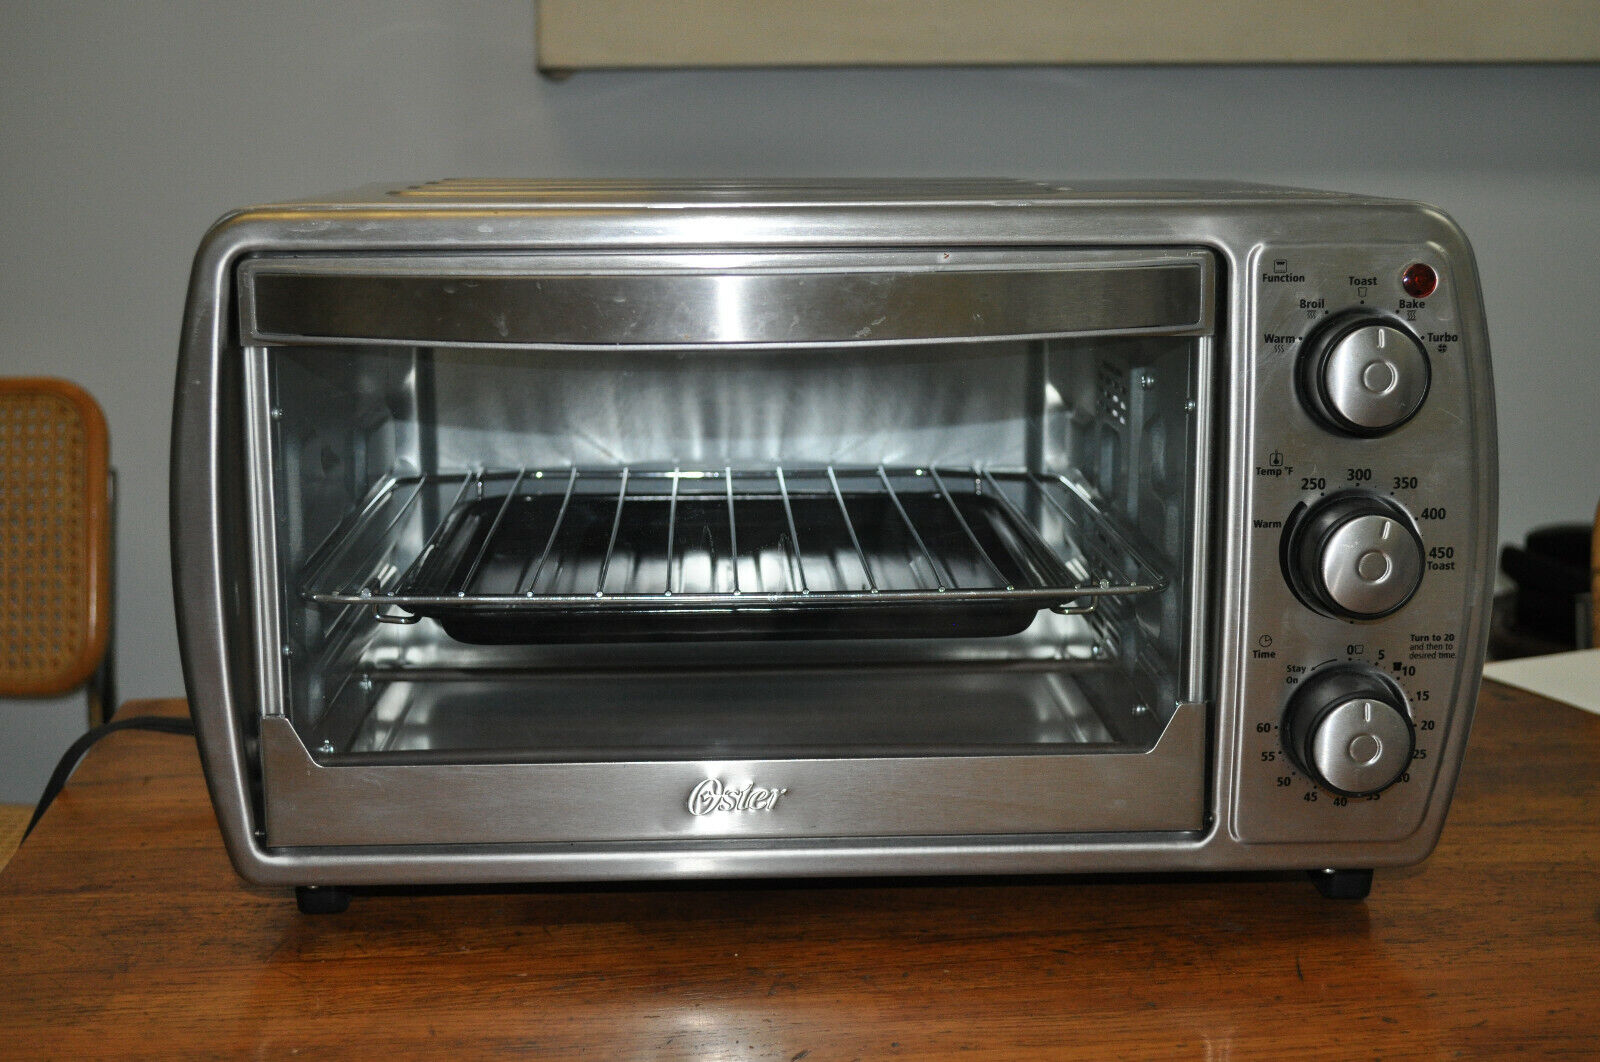 Oster TSSTTVCG02 Oster 6 Slice Convection Toaster Oven with